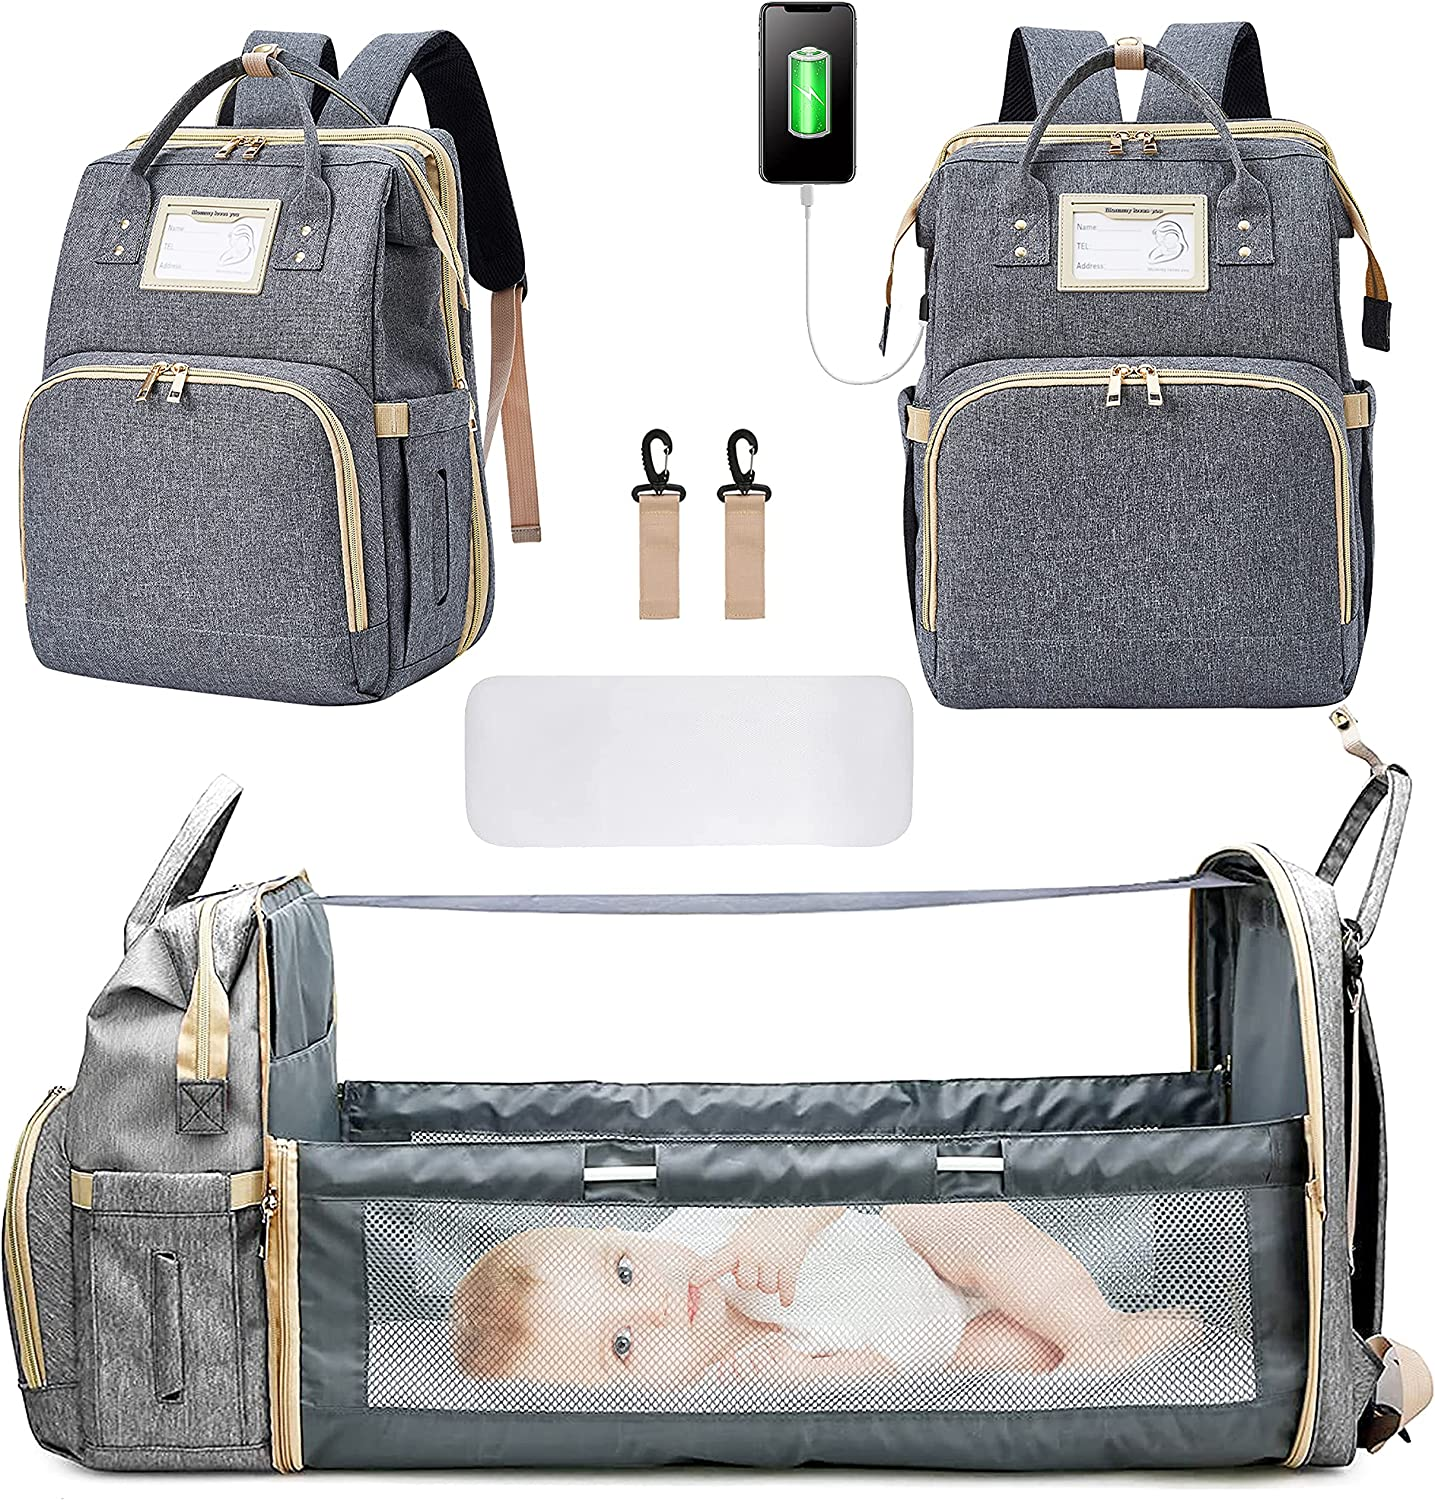 Diaper Bag Backpack, 3 in 1 Multifunction Travel Maternity Baby Nappy Changing Bags with Portable Changing Station Large Capacity Nappy Bag and Convenient USB Charge Port